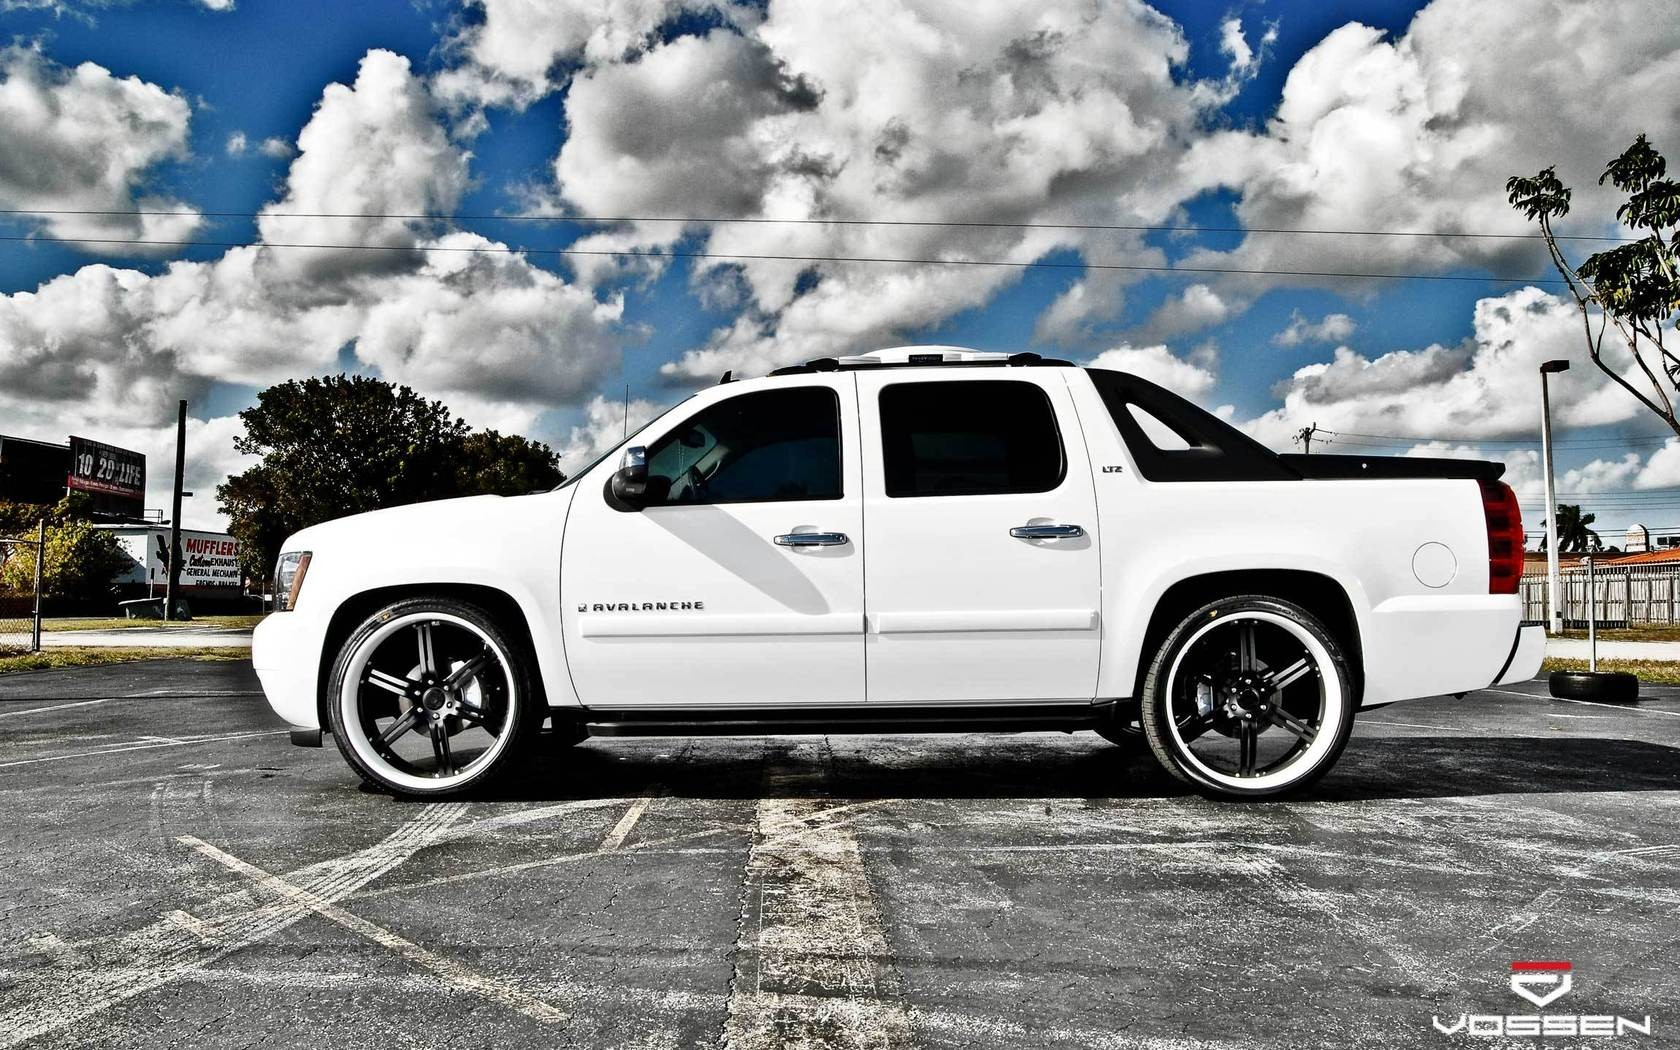 Cars Chevrolet Avalanche Vossen Wallpaper 1680x1050